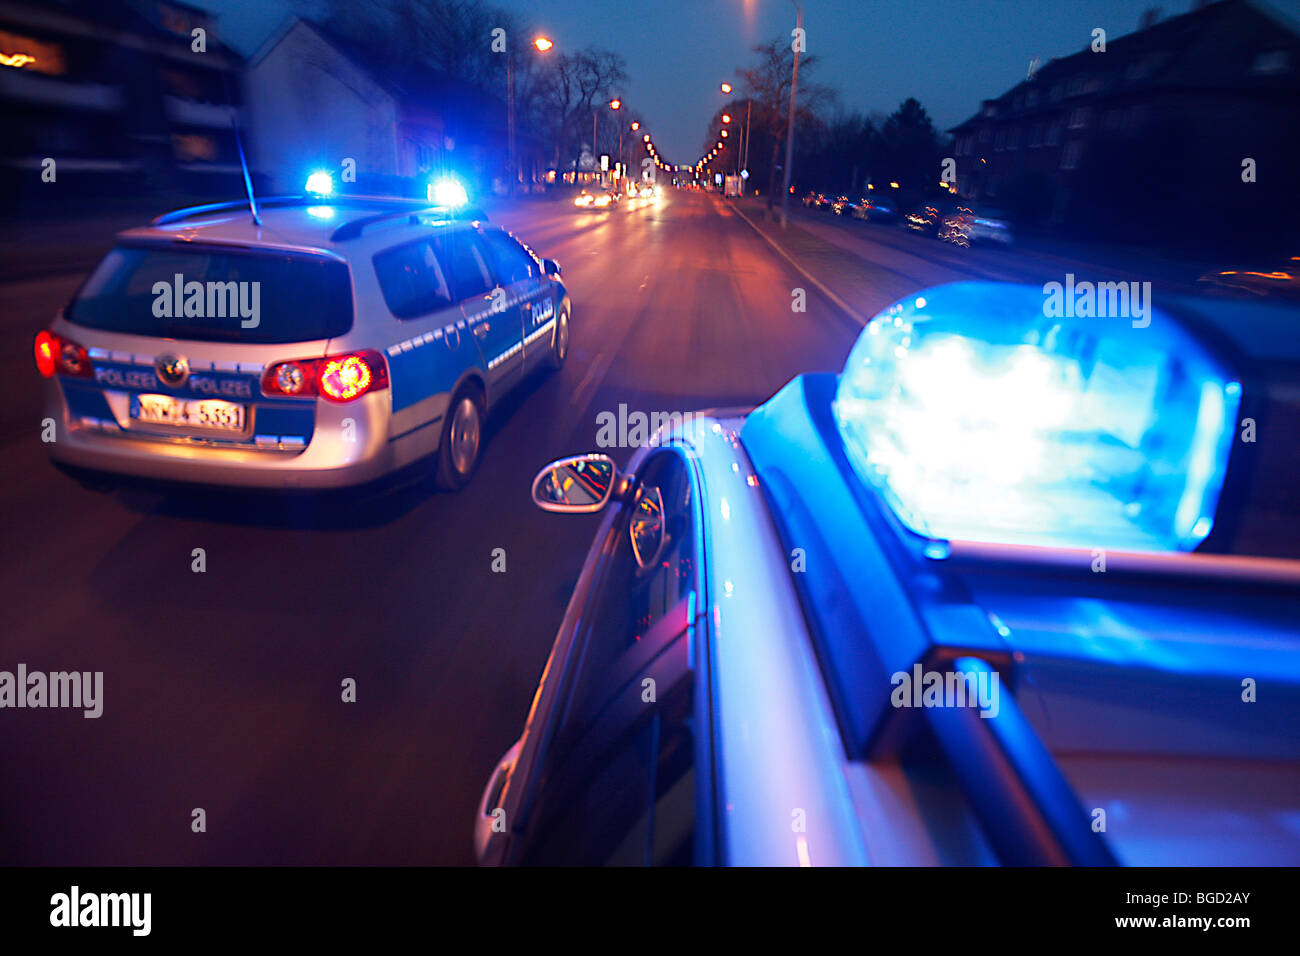 patrol car of the police in operation with blue lights switched on and siren, Germany, Europe. Stock Photo